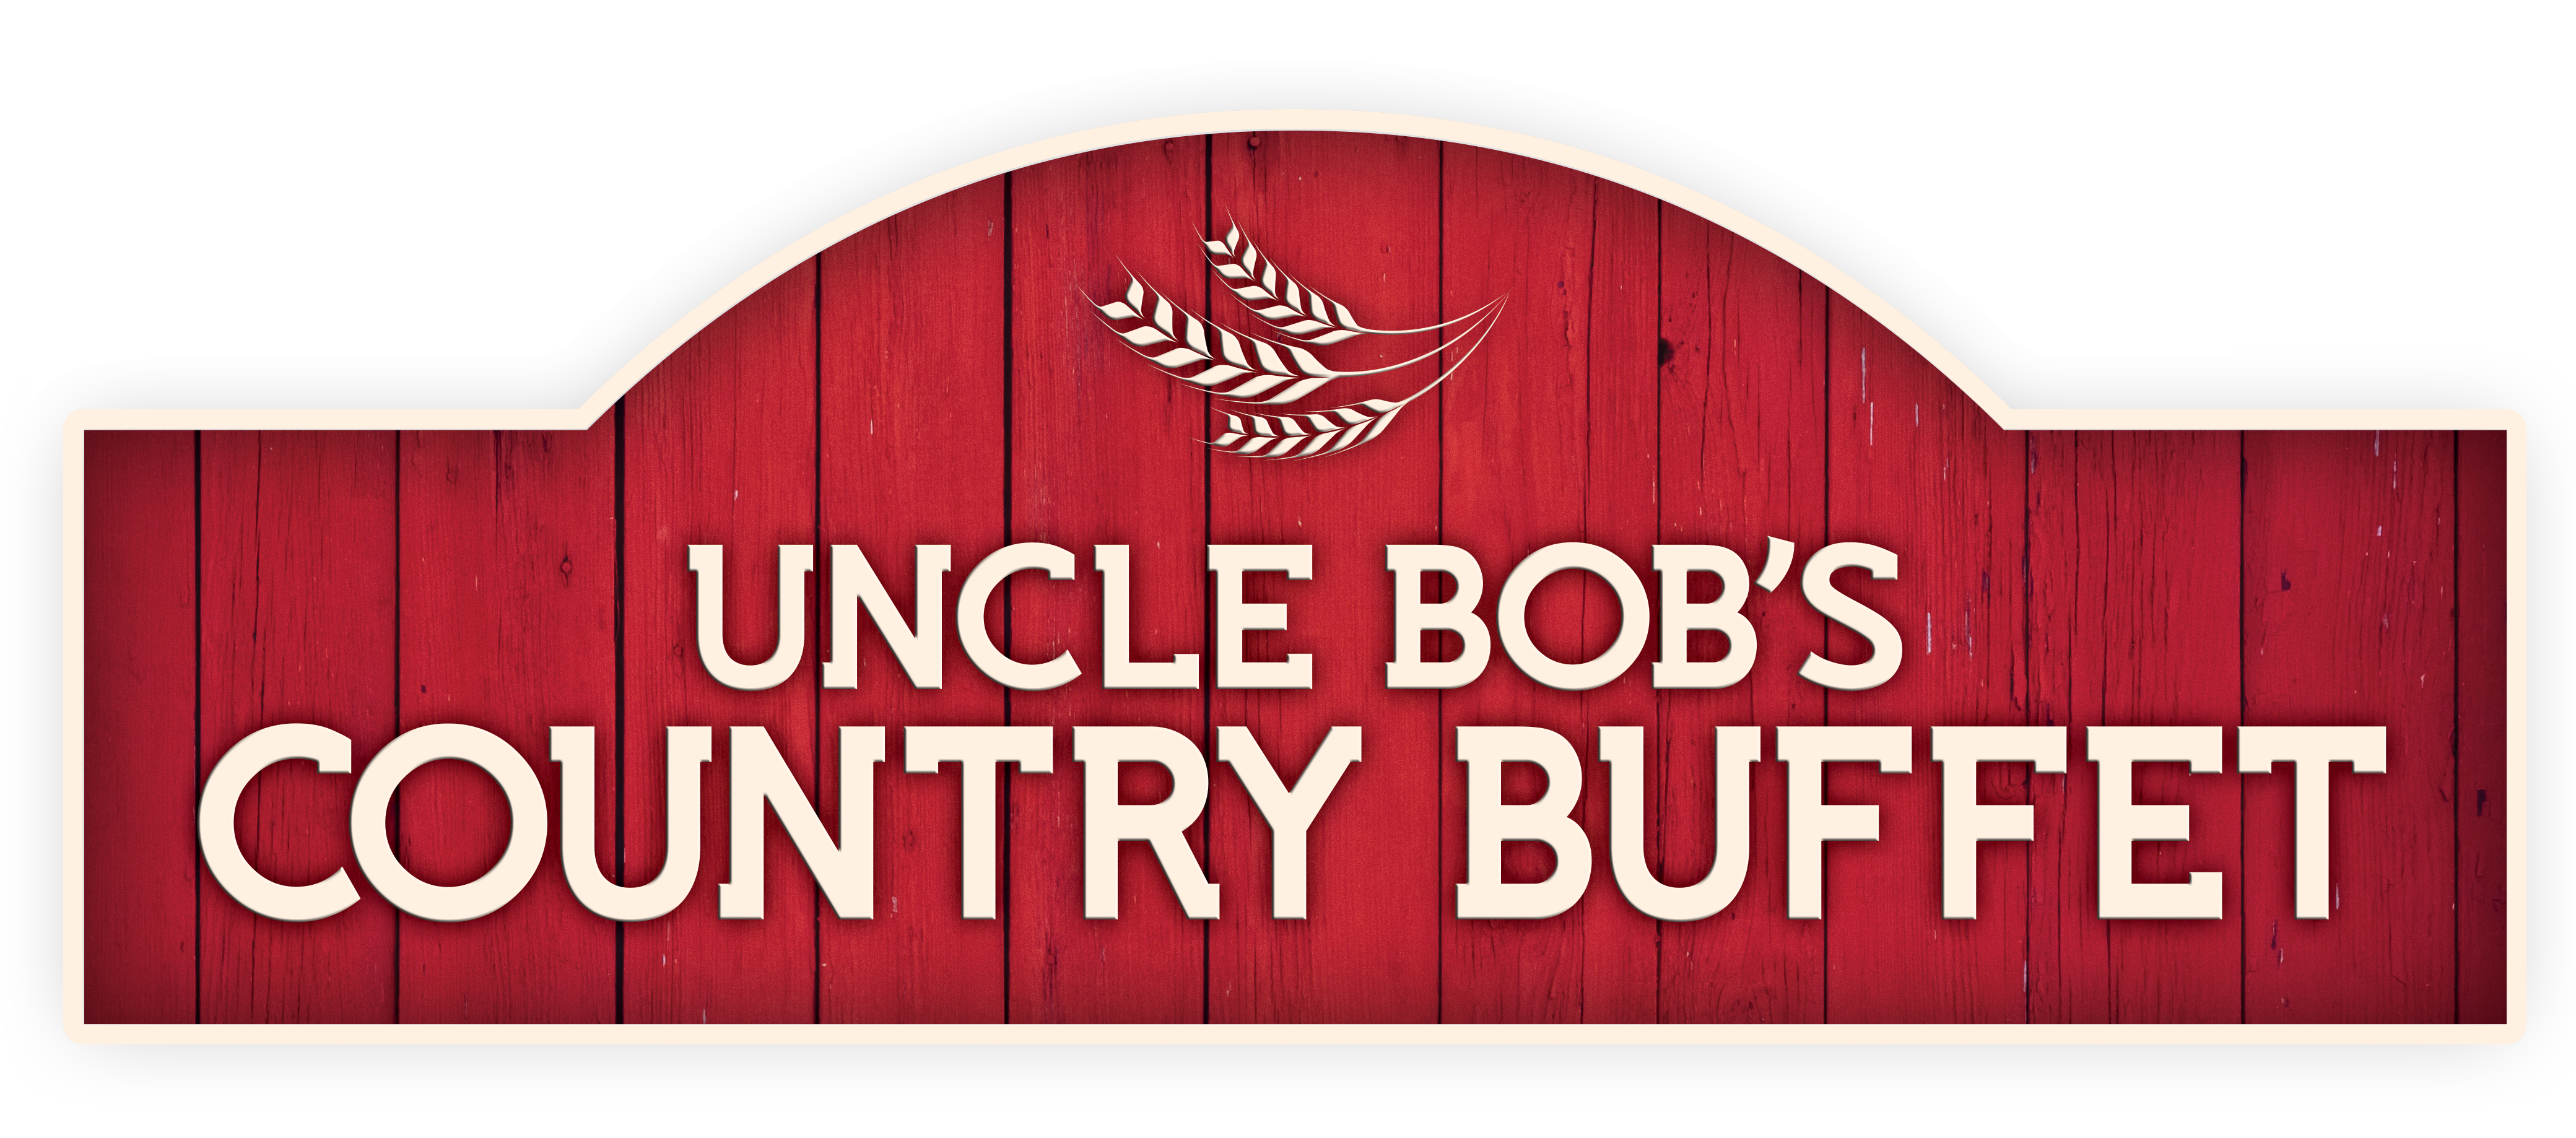 Uncle Bob's Country Buffet